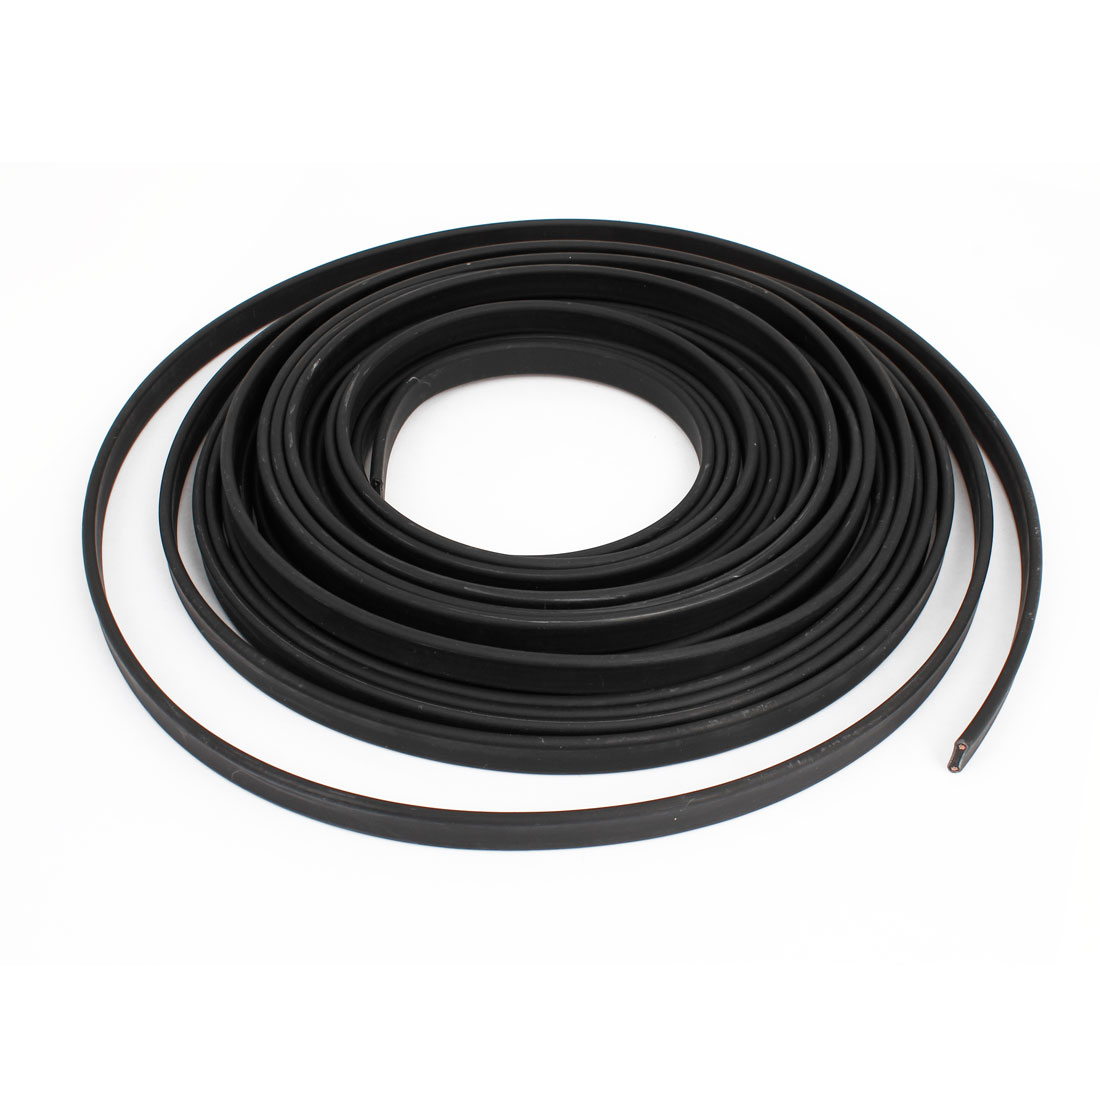 Black Corrosion Prevention Waterproof Heating Cable 36V 10M x 13mm